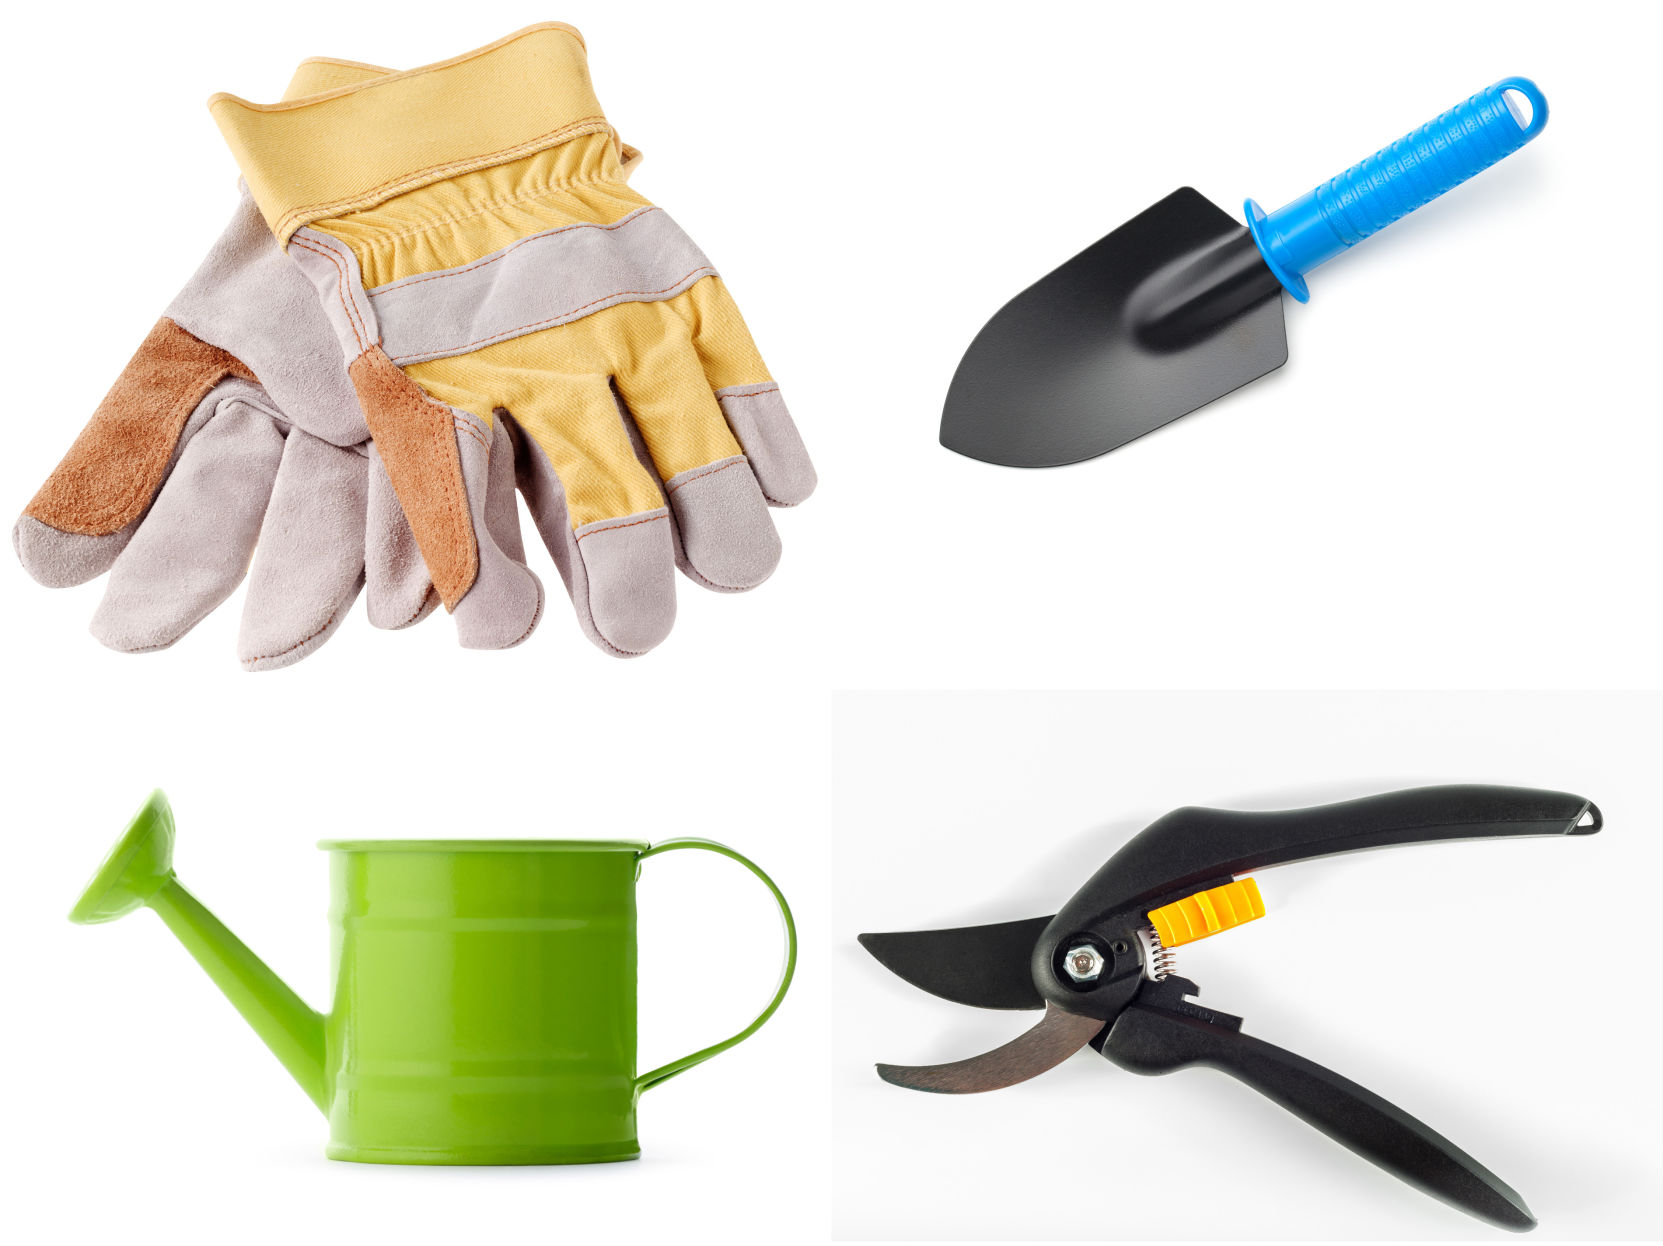 Start The Growing Season Right By Making Sure Your Garden Shed Is Stocked  With The Most Valuable Tools.